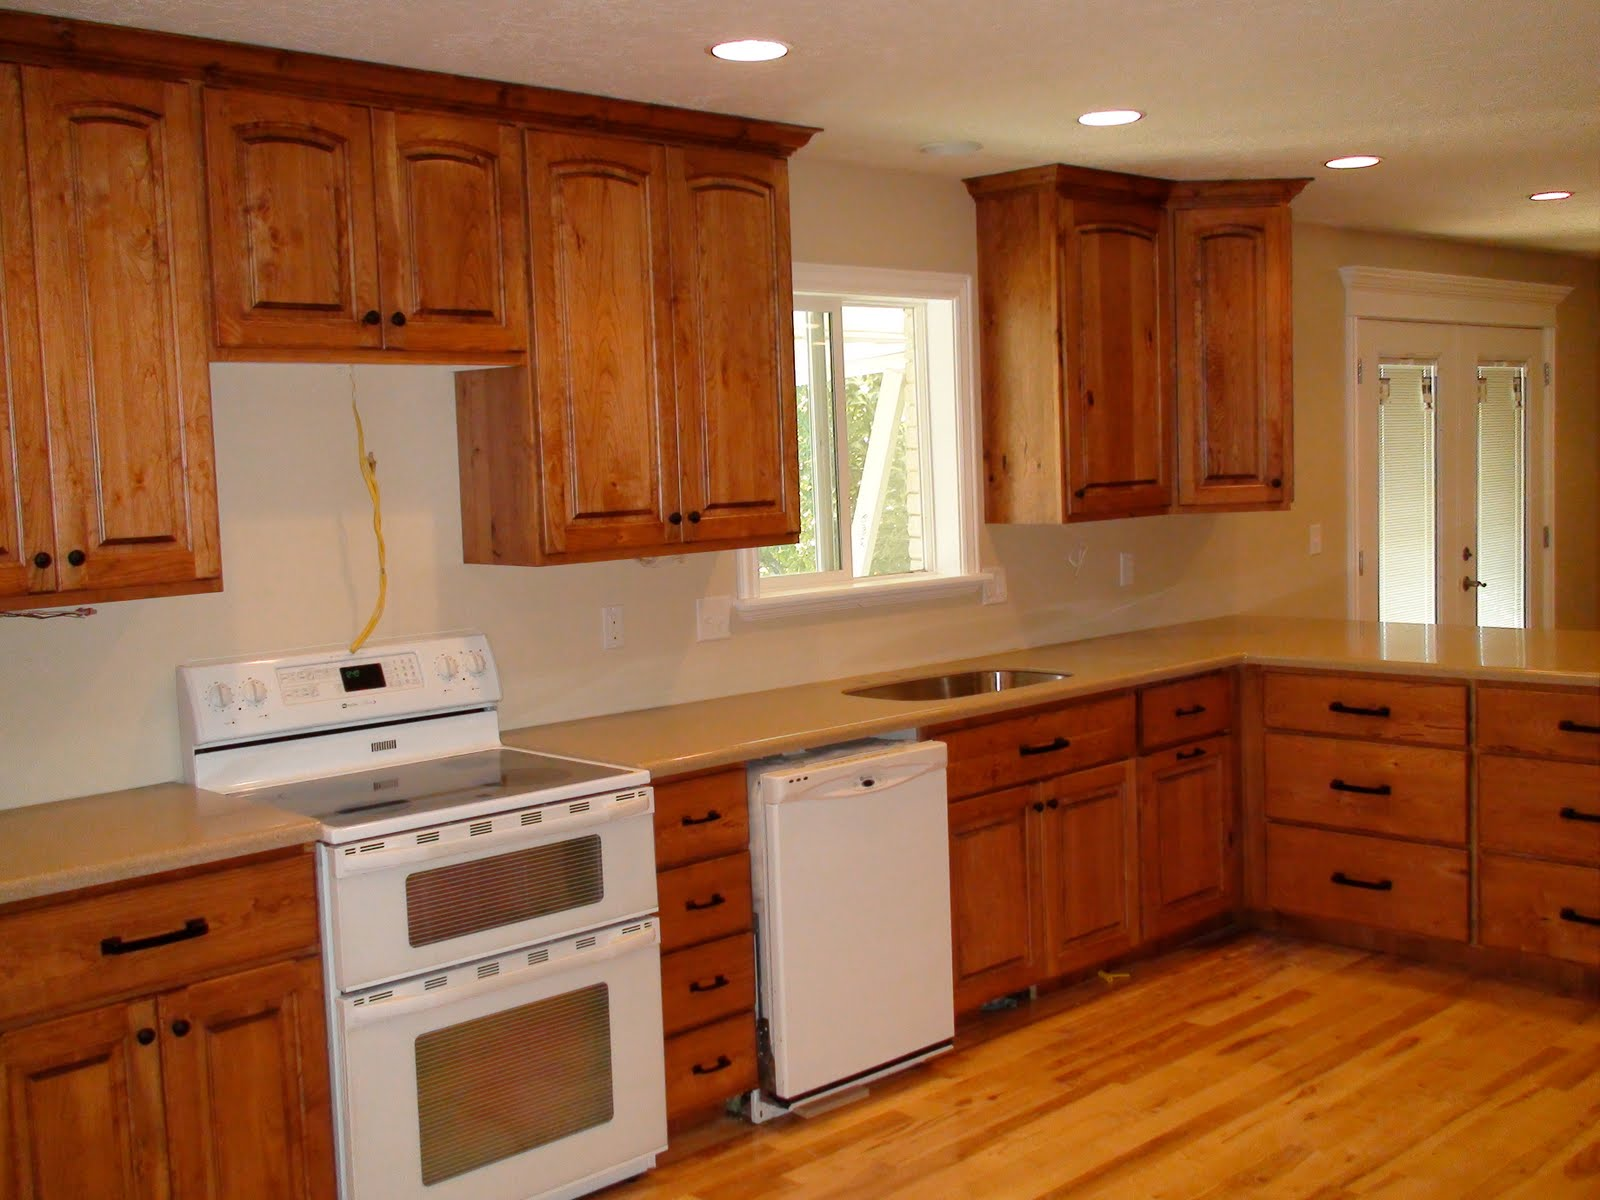 Rustic Cherry Wood Cabinets